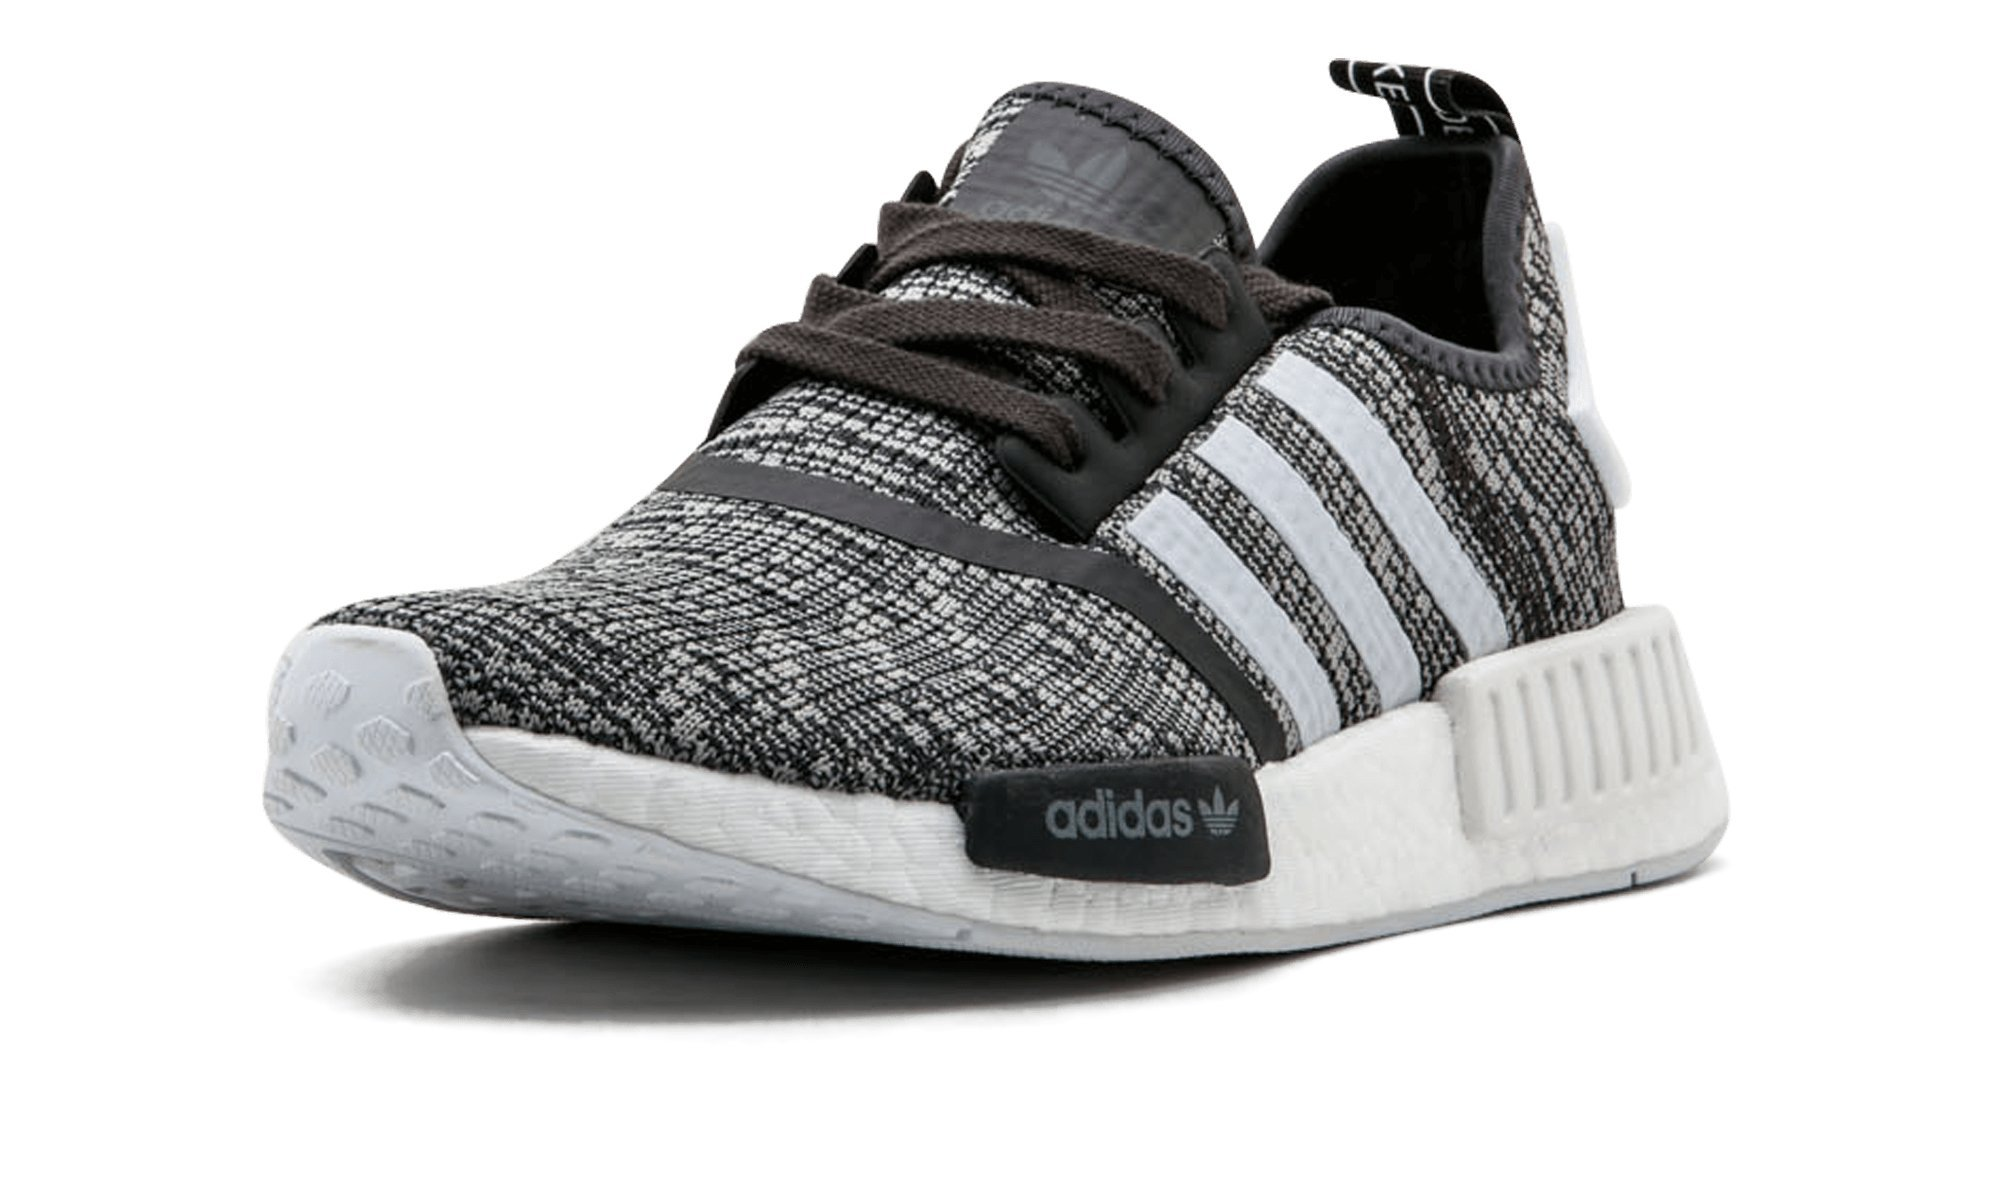 separation shoes 59ac4 331f1 Adidas NMD_R1 W - BY3035